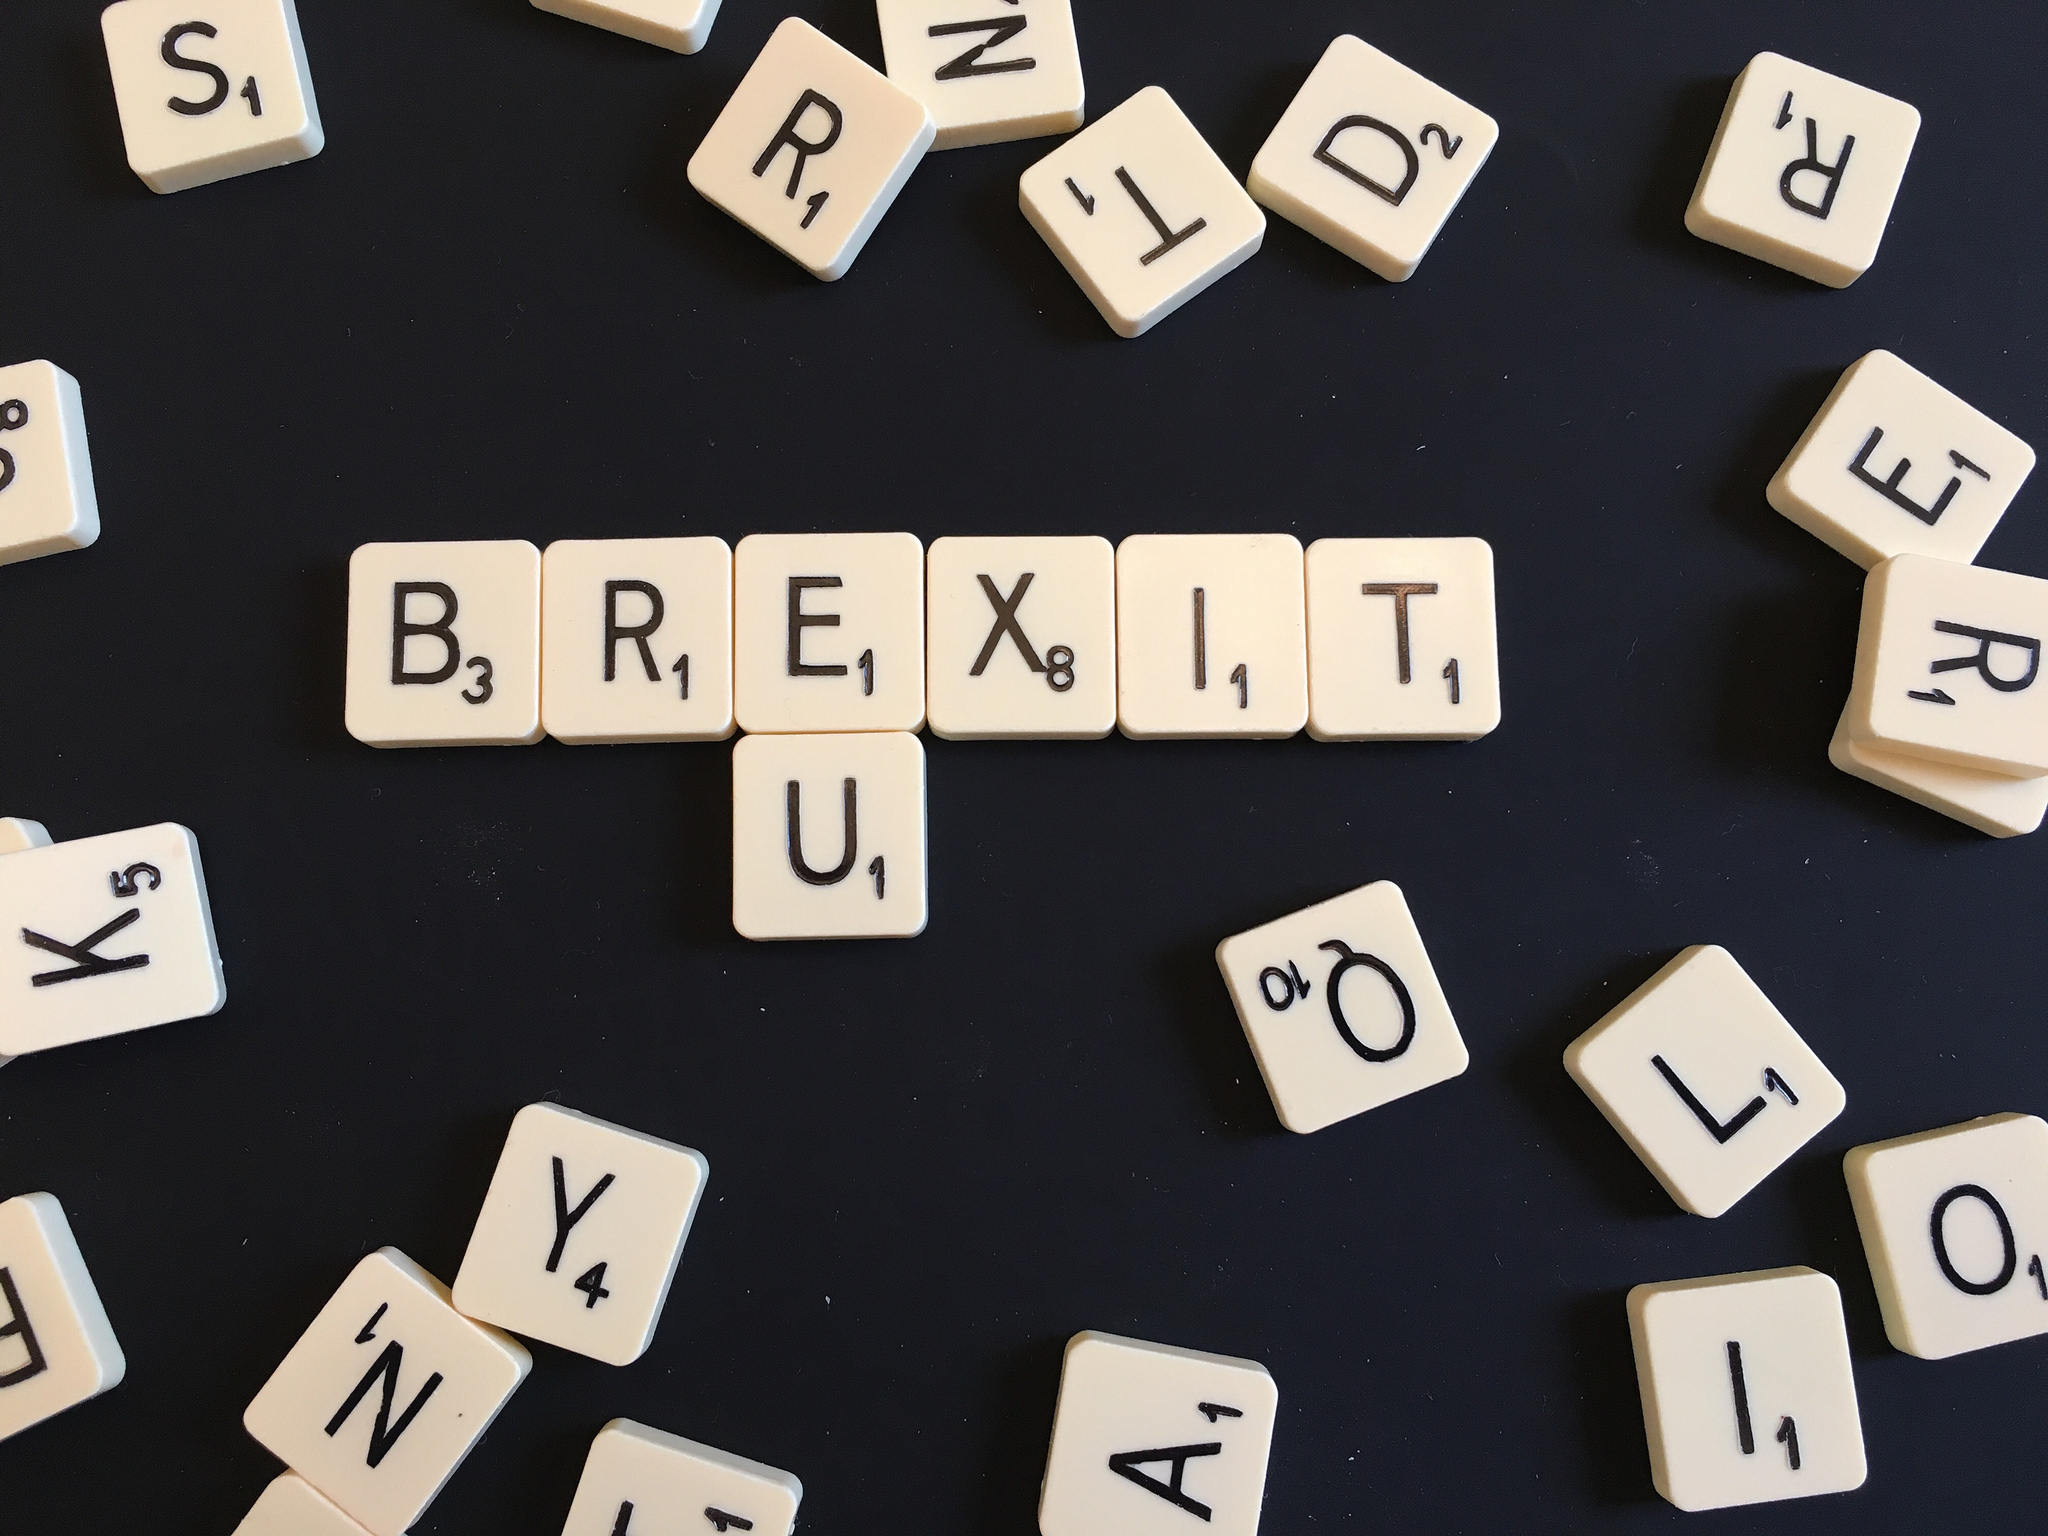 Foto: Brexit / EU Scrabble  (Jeff Djevdet/flickr.com; Lizenz: CC BY 2.0) speedpropertybuyers.co.uk/